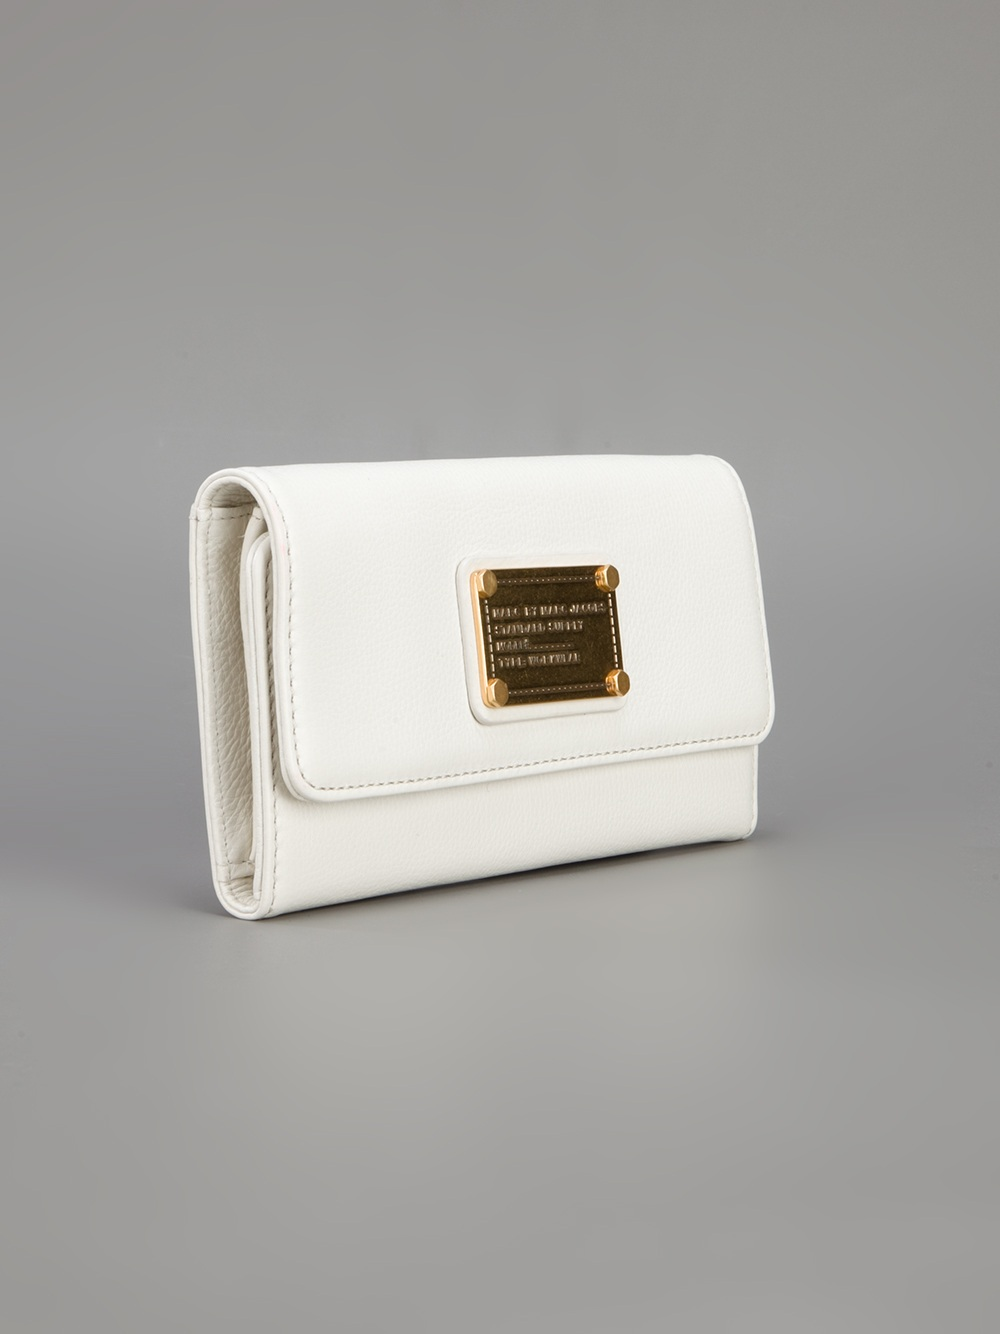 0f1b96f741 Marc By Marc Jacobs Wallet in White - Lyst